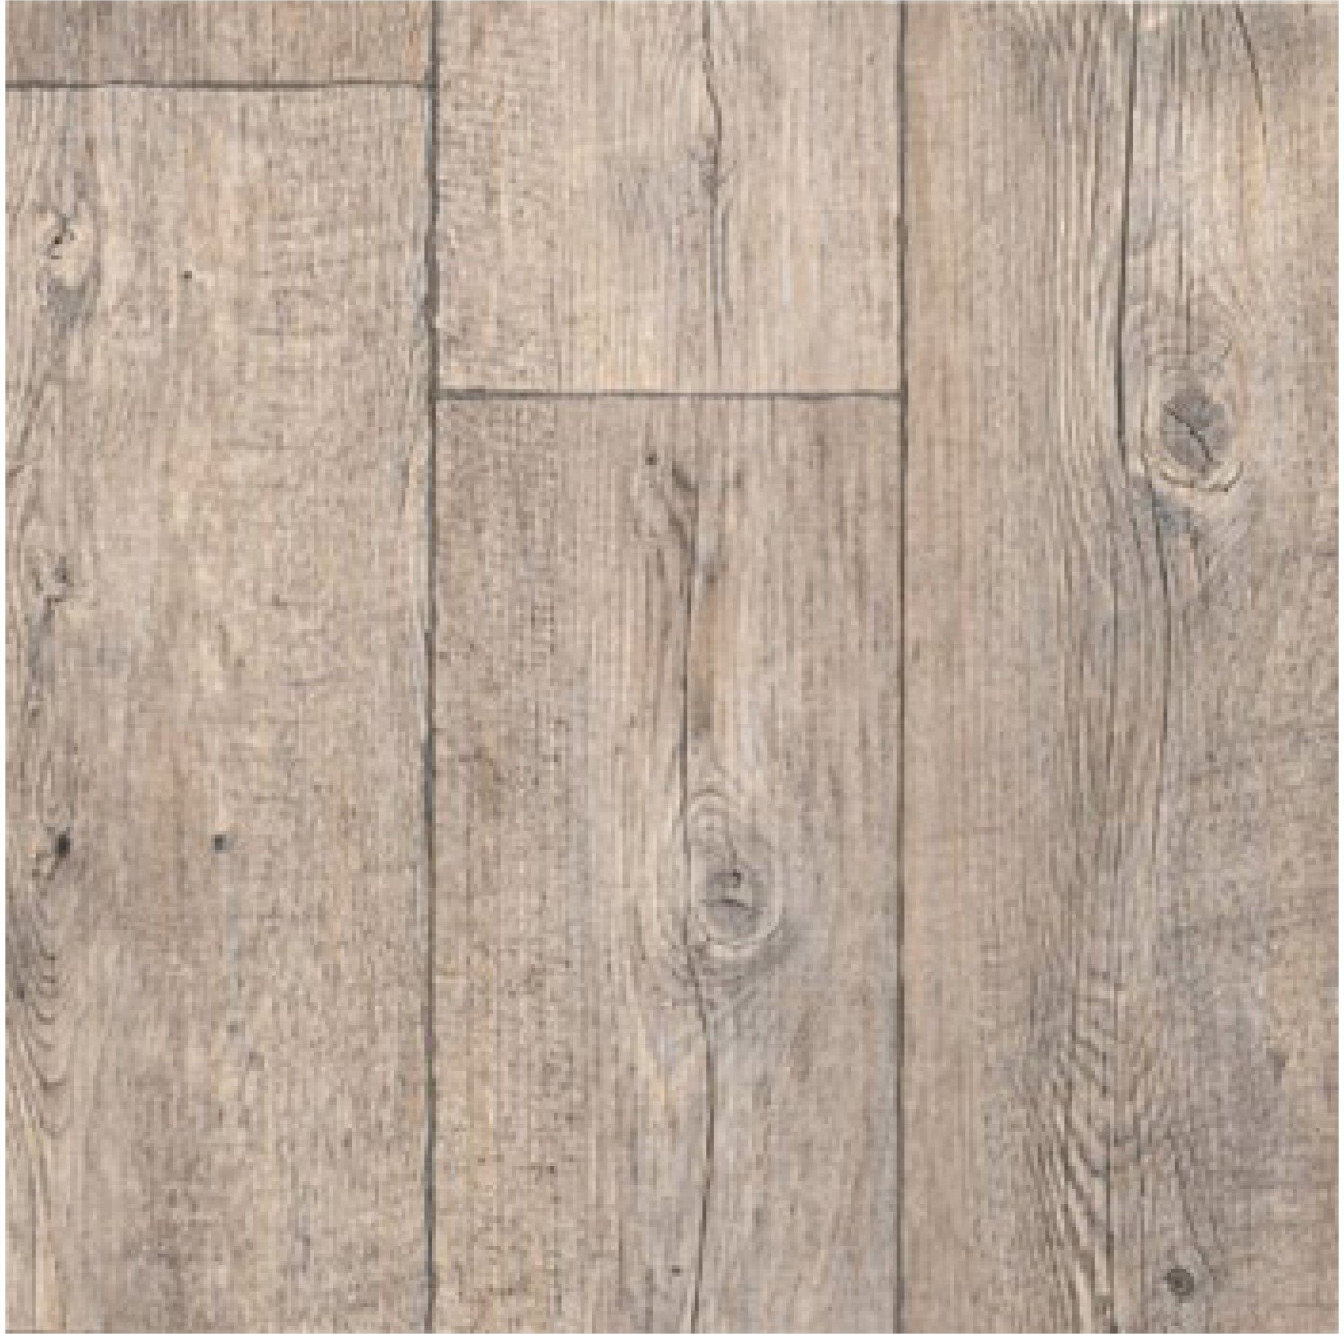 vinyylimatto gerflor texline farm pecan leveys 2 m. Black Bedroom Furniture Sets. Home Design Ideas